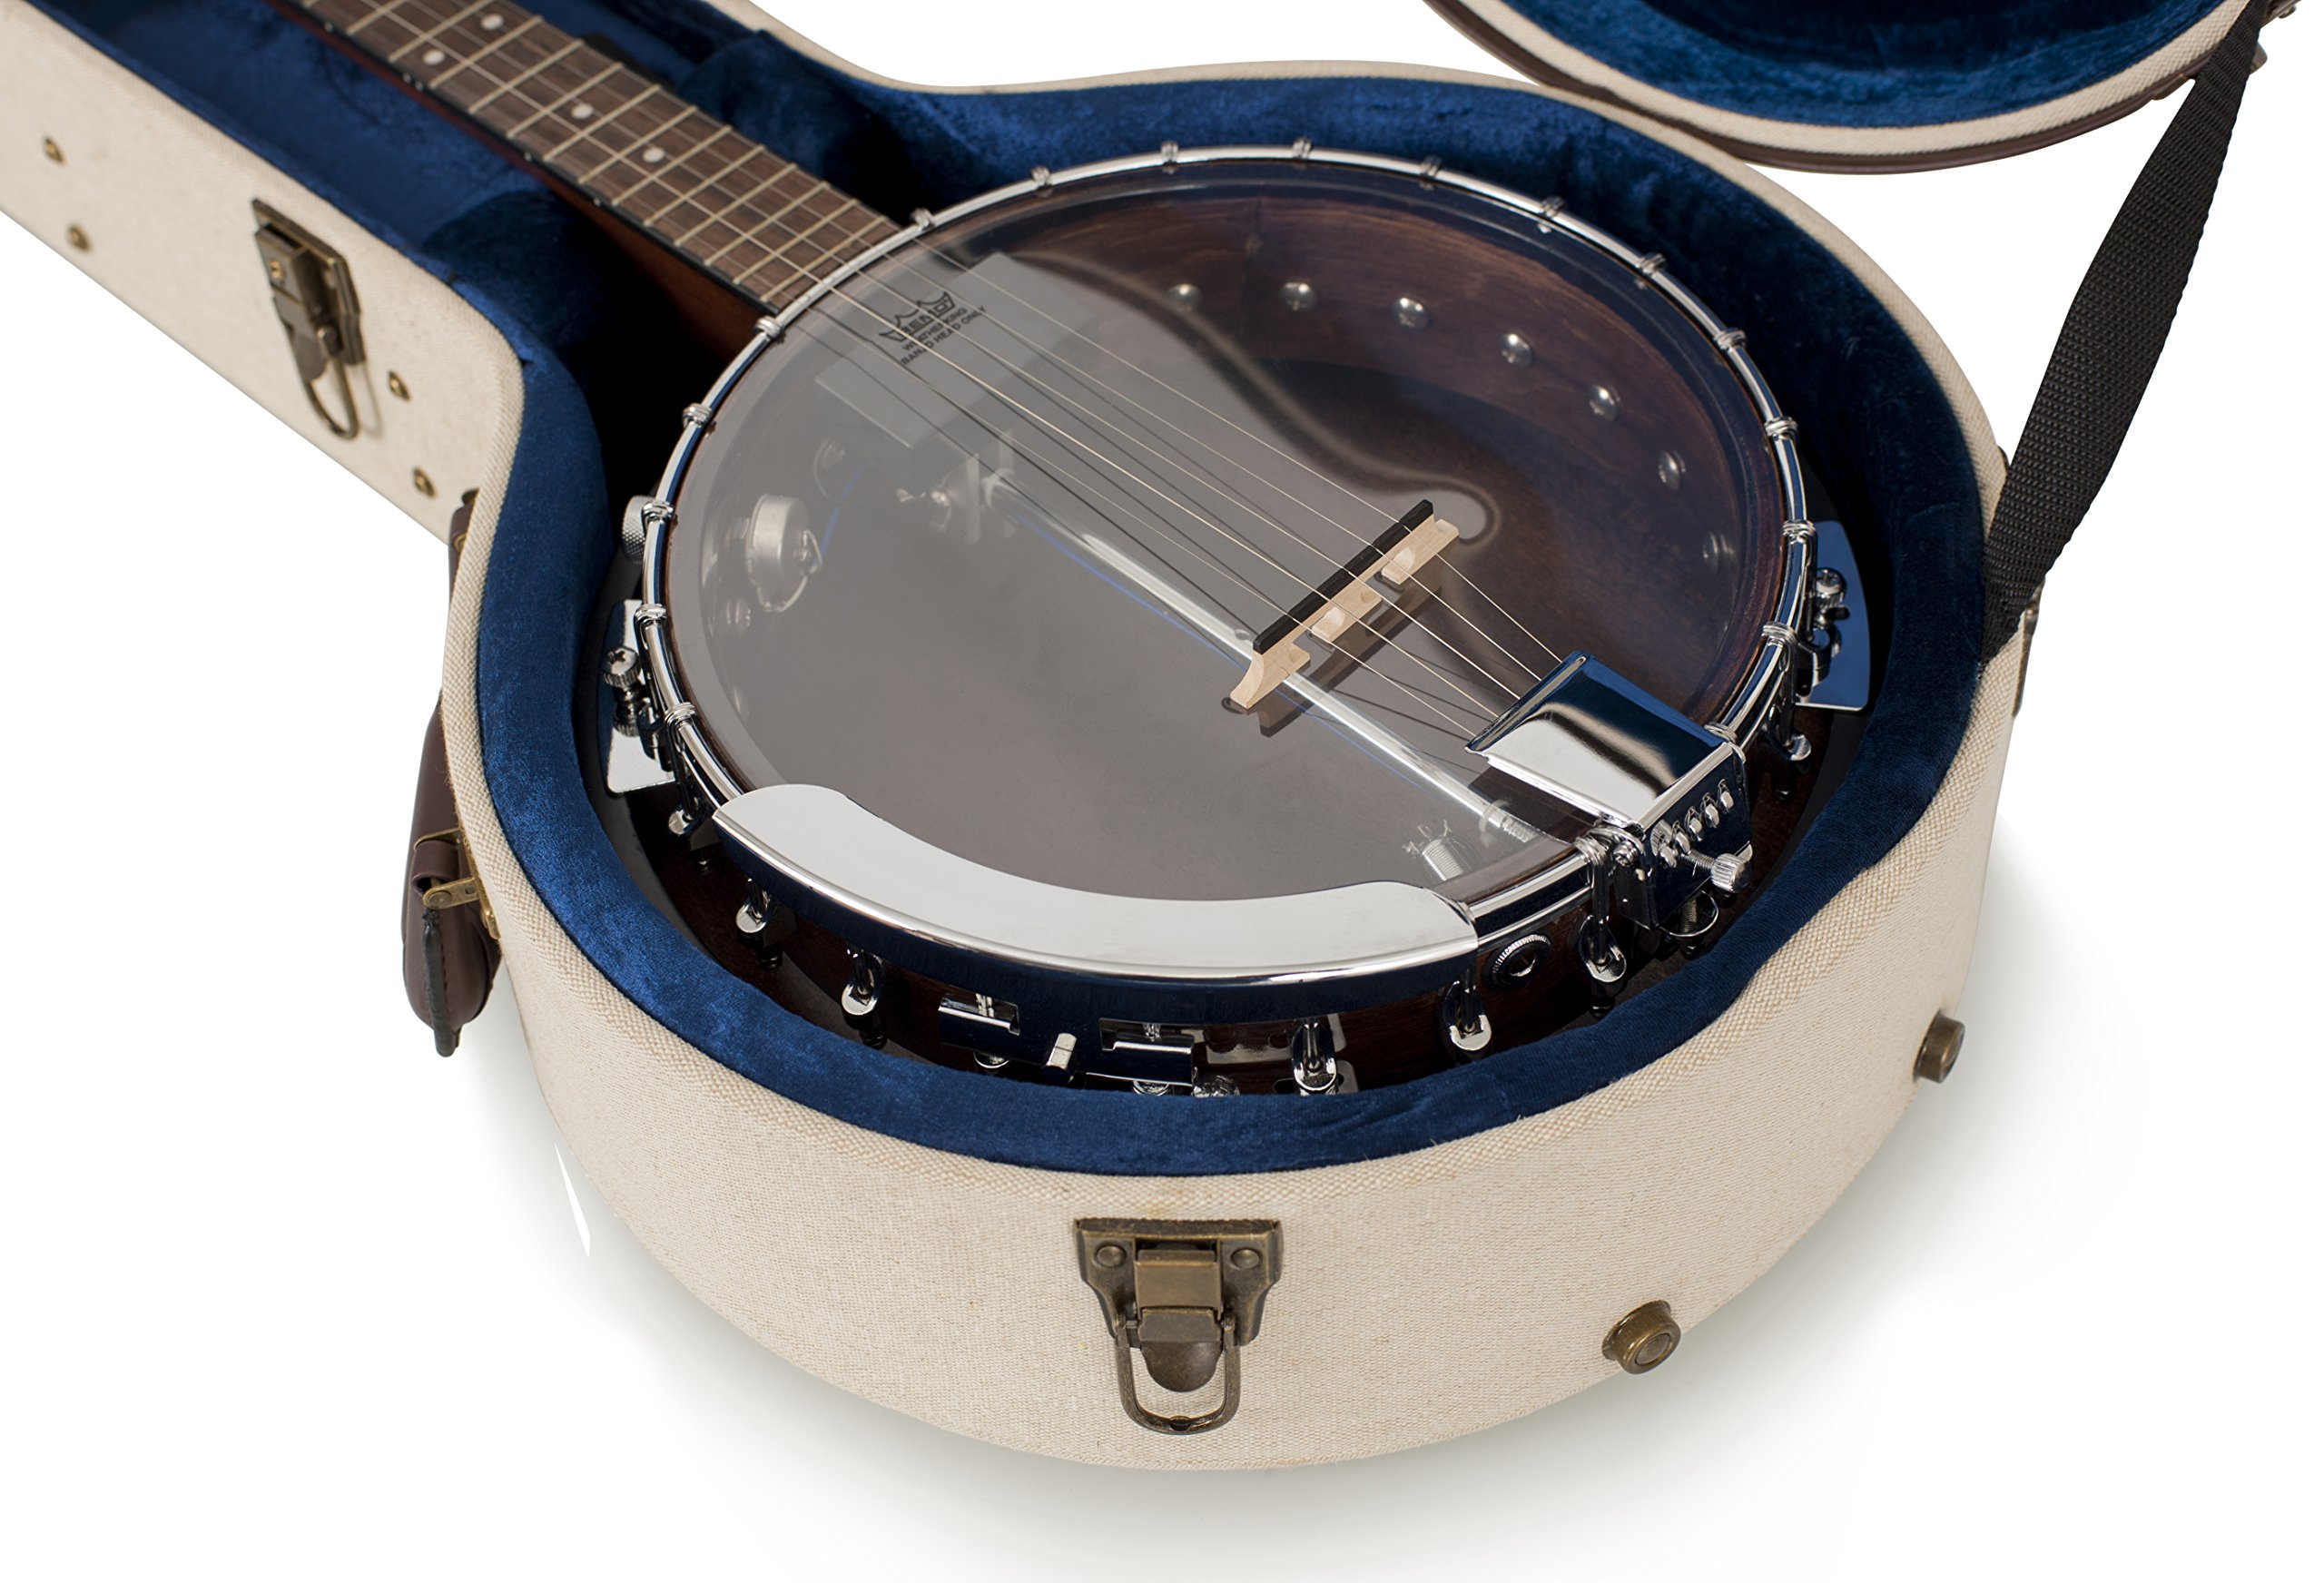 Gator Cases Journeyman Series Deluxe Wood Case for Banjos (GW-JM BANJO XL) by Gator (Image #5)